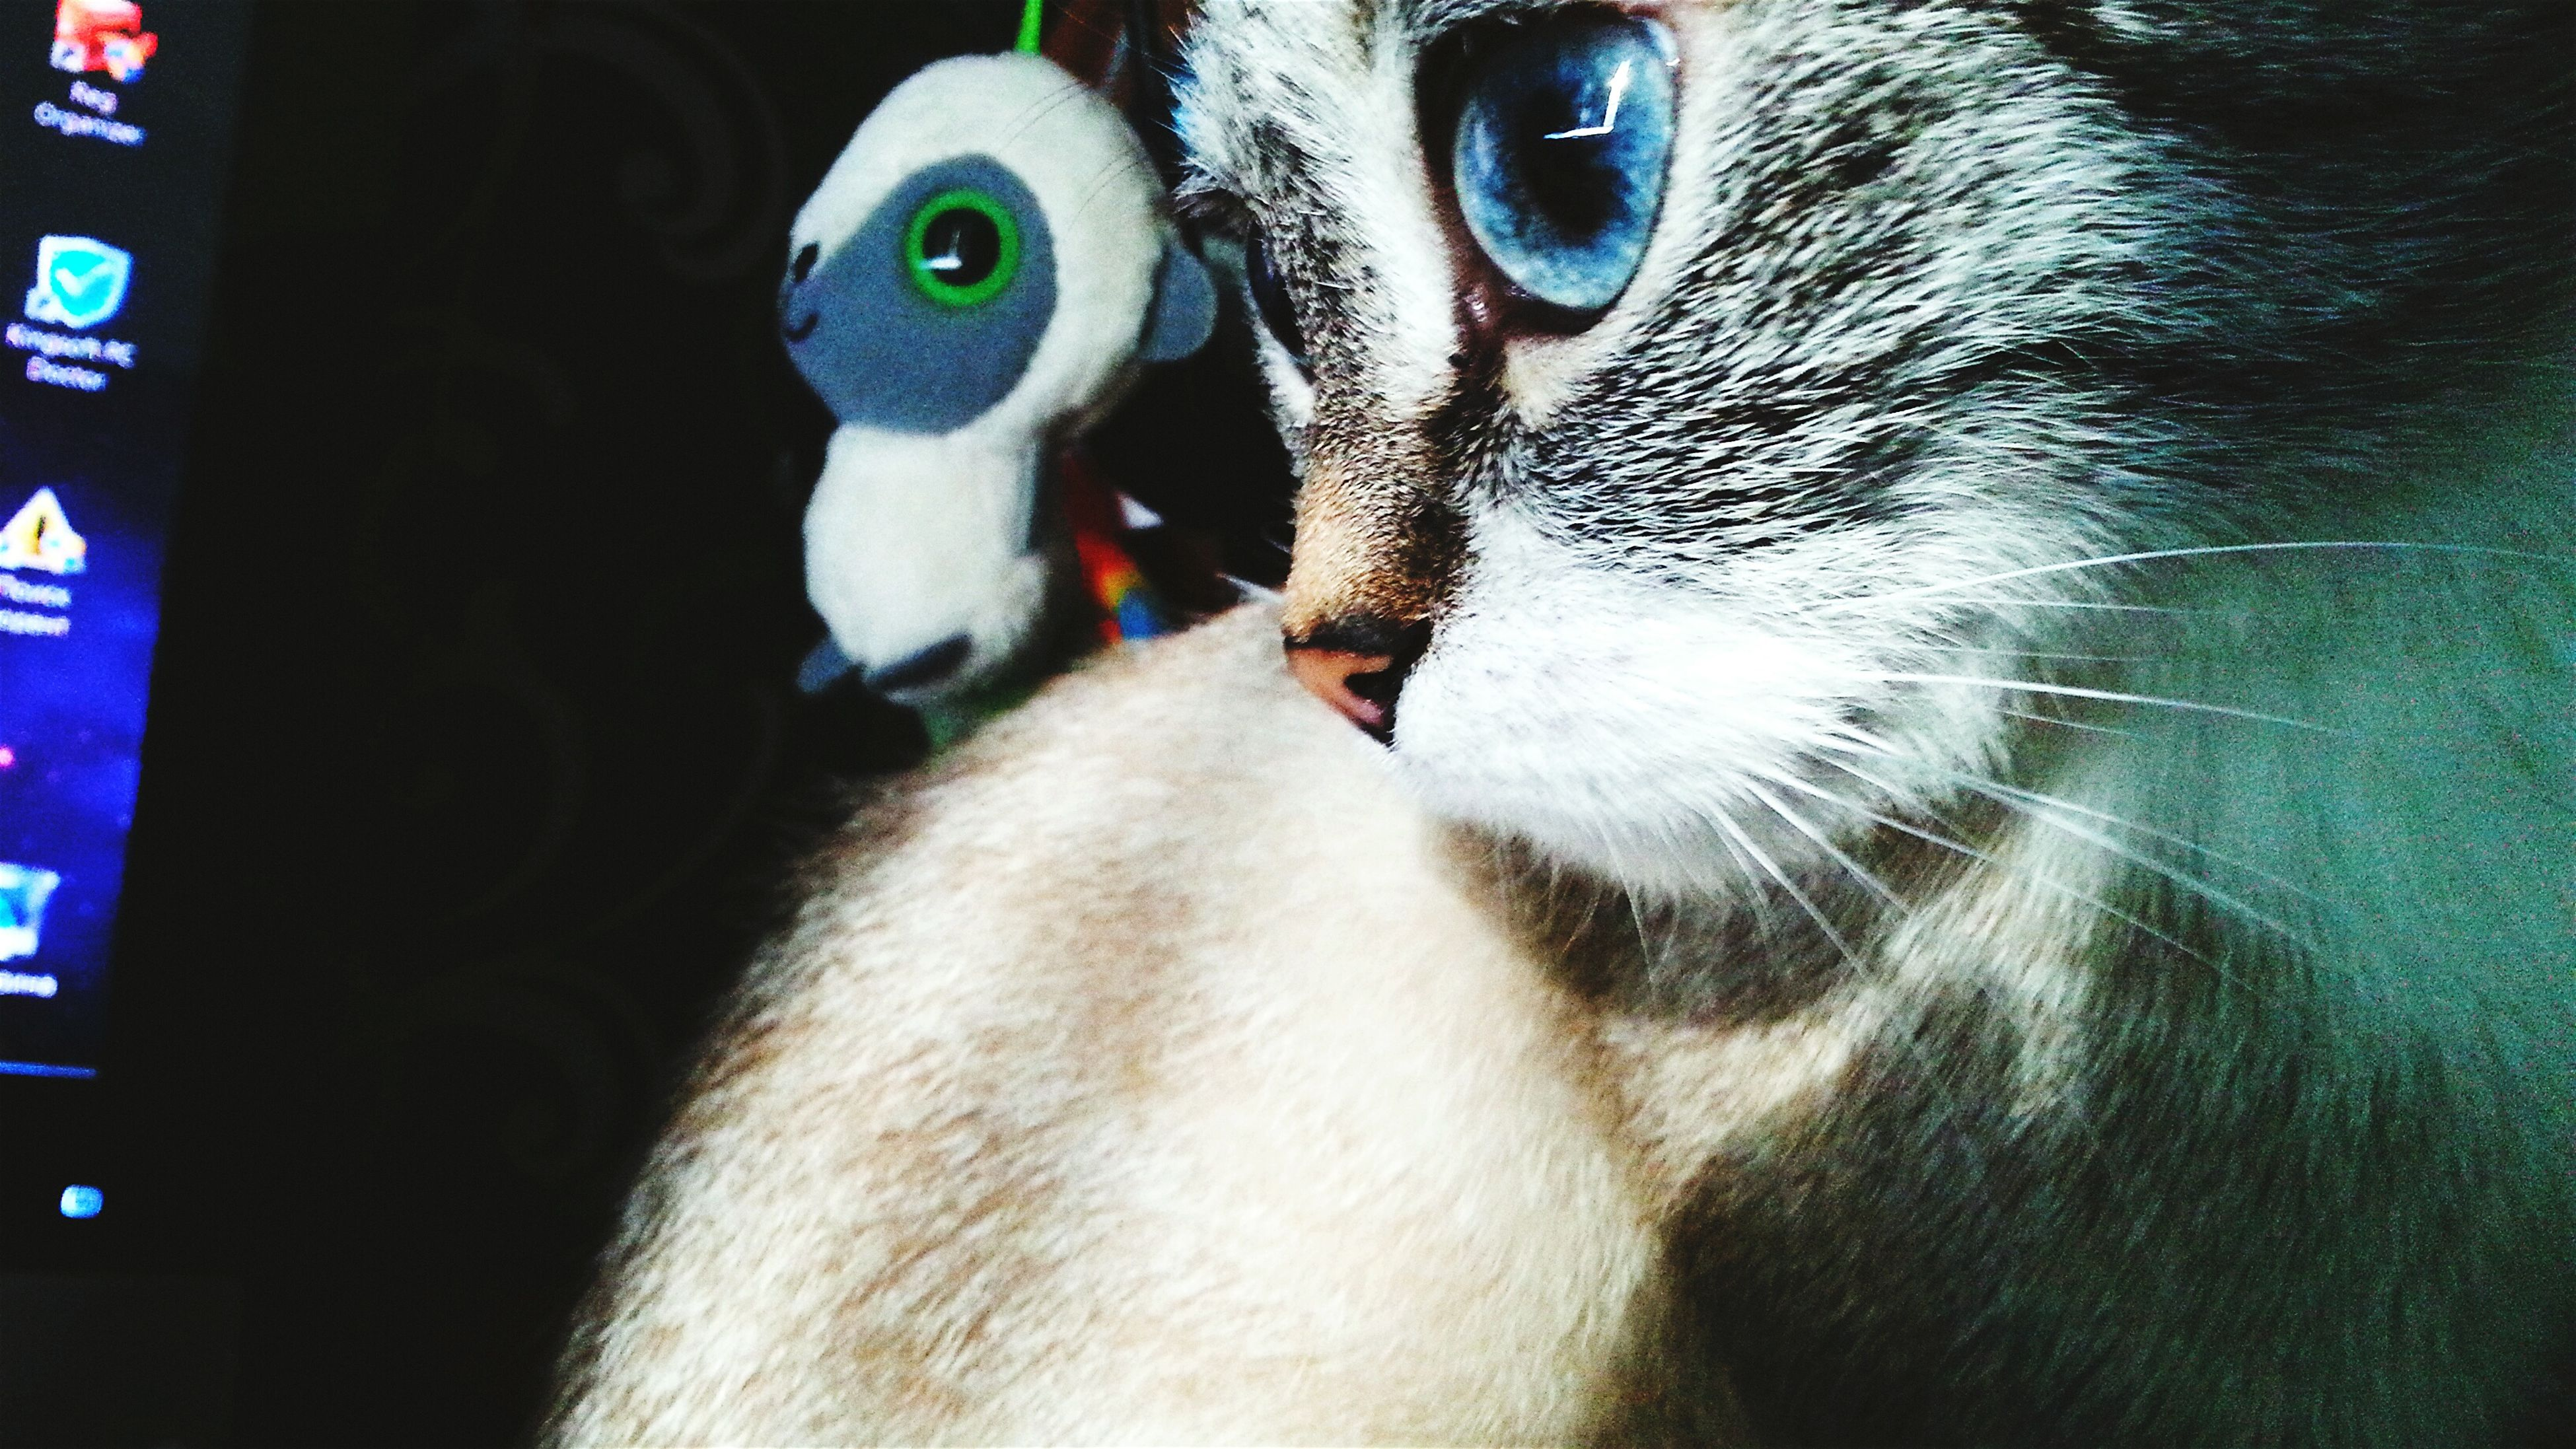 animal themes, one animal, pets, domestic animals, domestic cat, mammal, cat, indoors, feline, whisker, animal head, close-up, portrait, looking at camera, animal eye, animal body part, no people, alertness, zoology